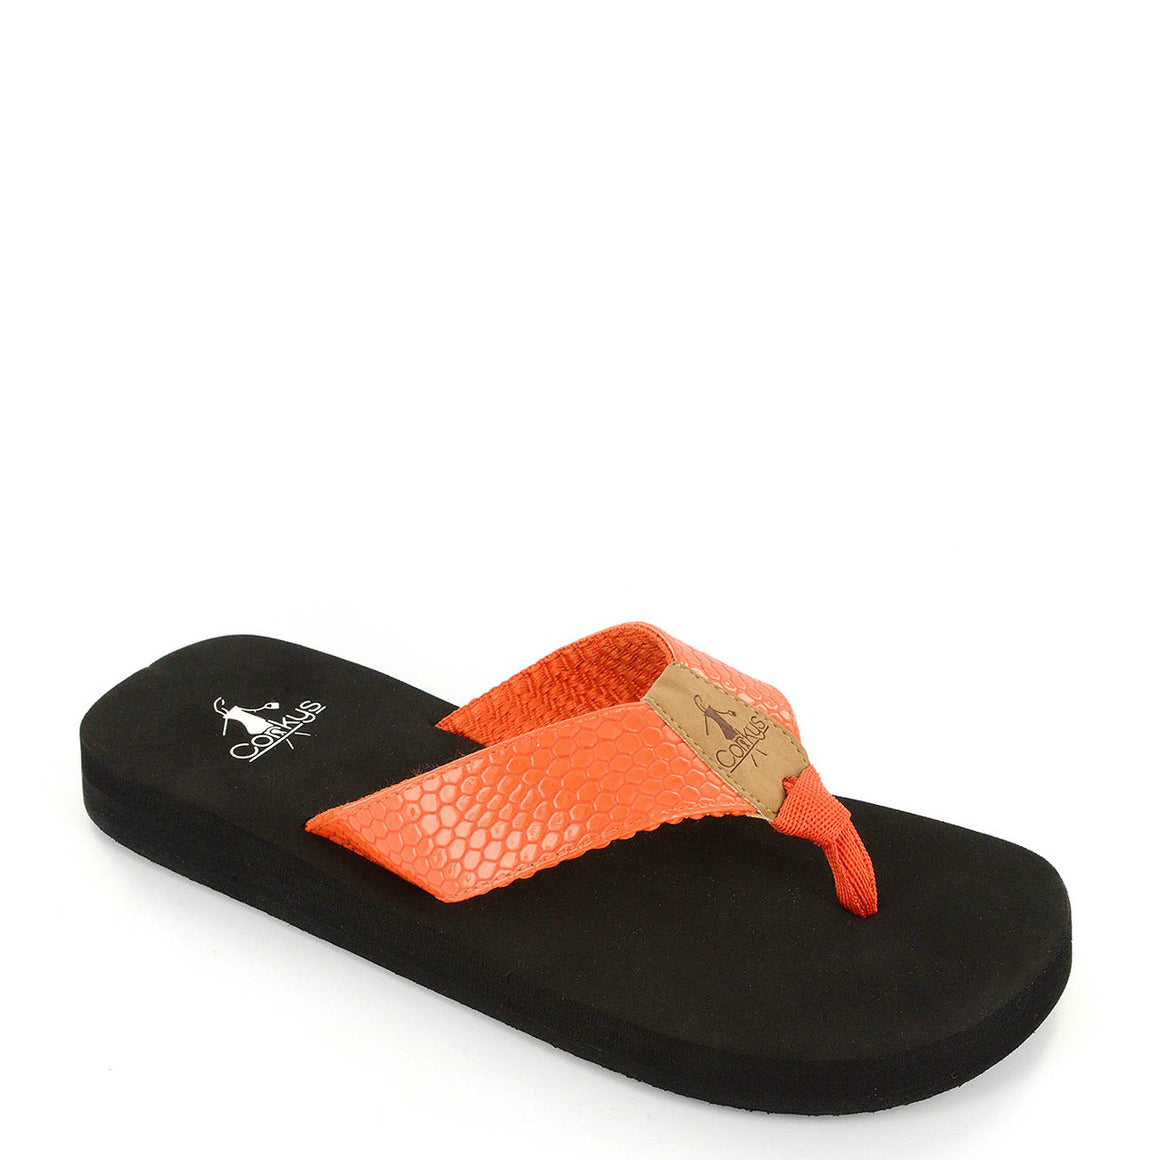 Corkys Women's Secret Flip Flop - Orange 20-8108